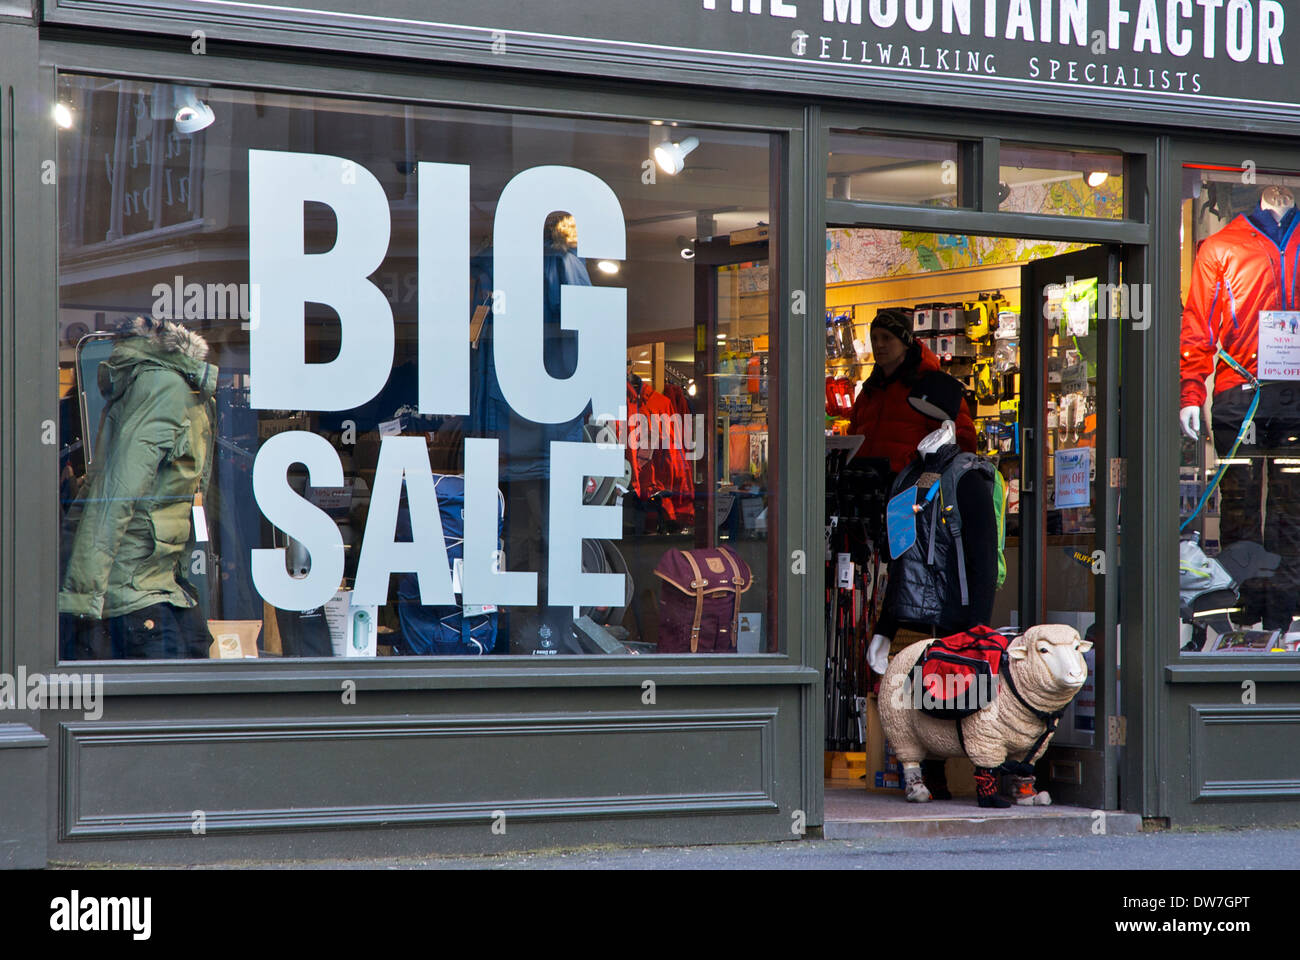 Big Sale - and Herdwick sheep - at outdoor shop, The Mountain Factor, Ambleside, Lake District National Park, Cumbria, England - Stock Image